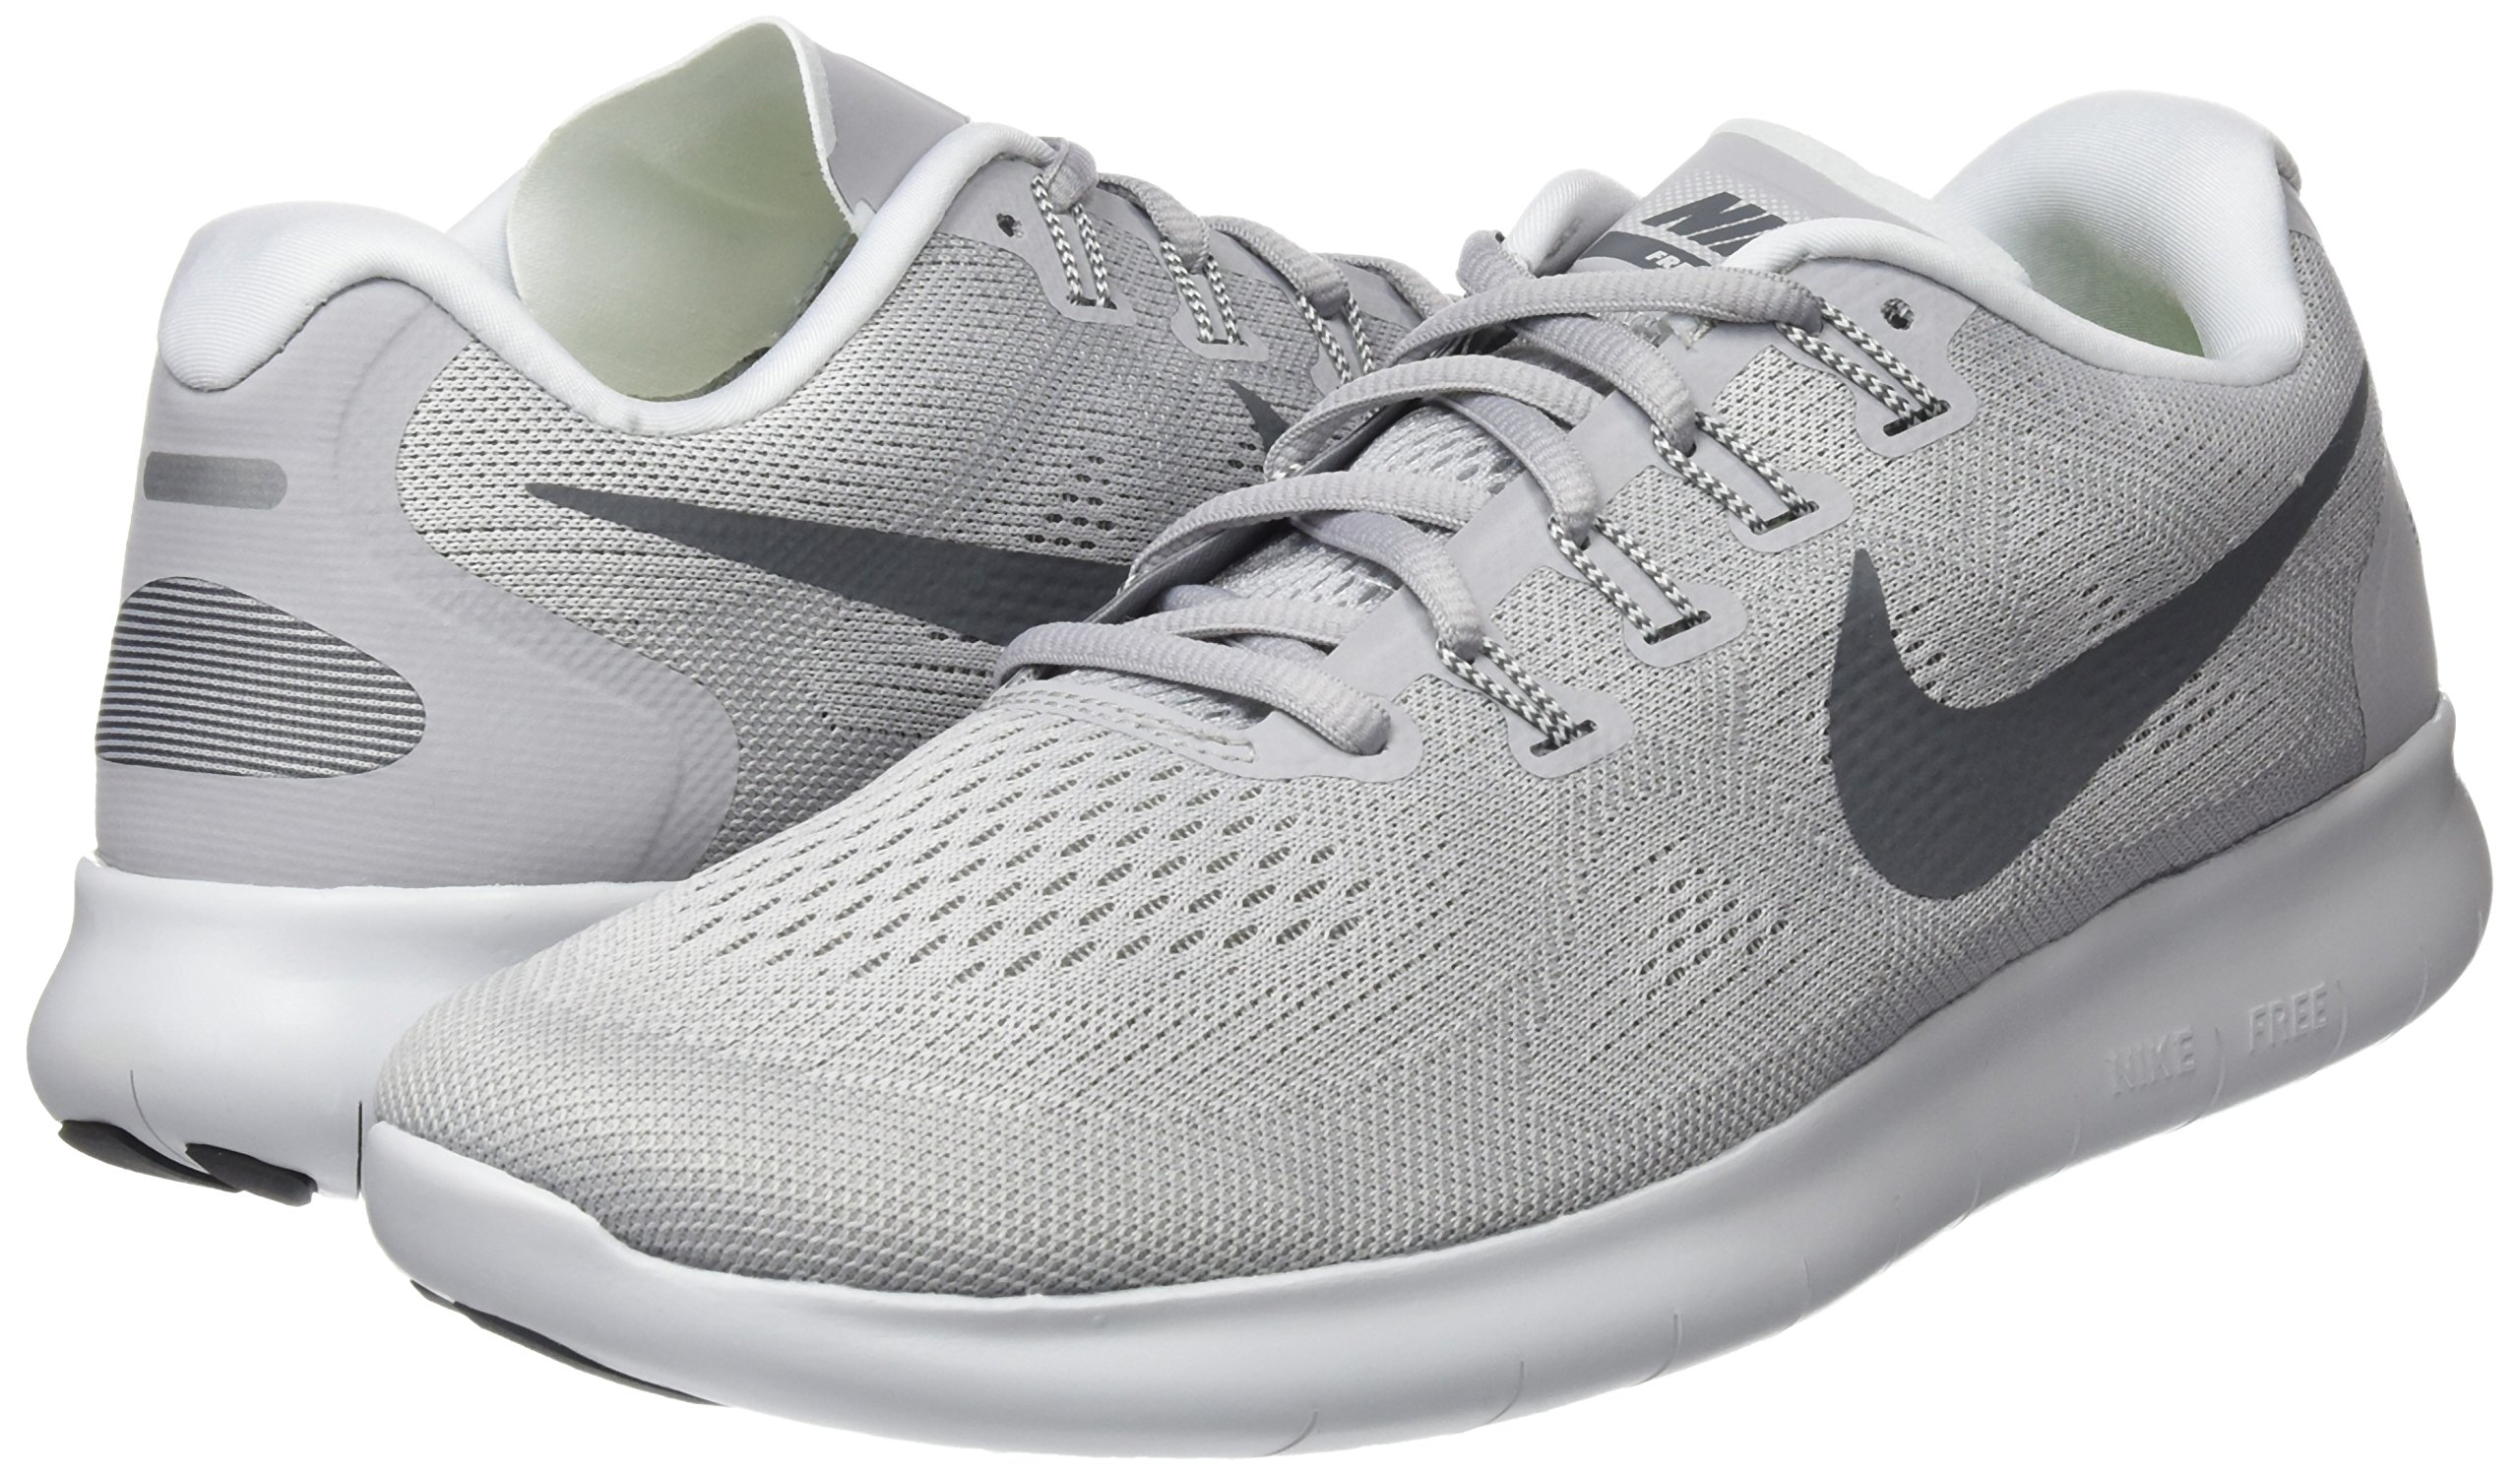 NIKE Men's Free RN 2017 Running Shoe 7.5 by Nike (Image #5)